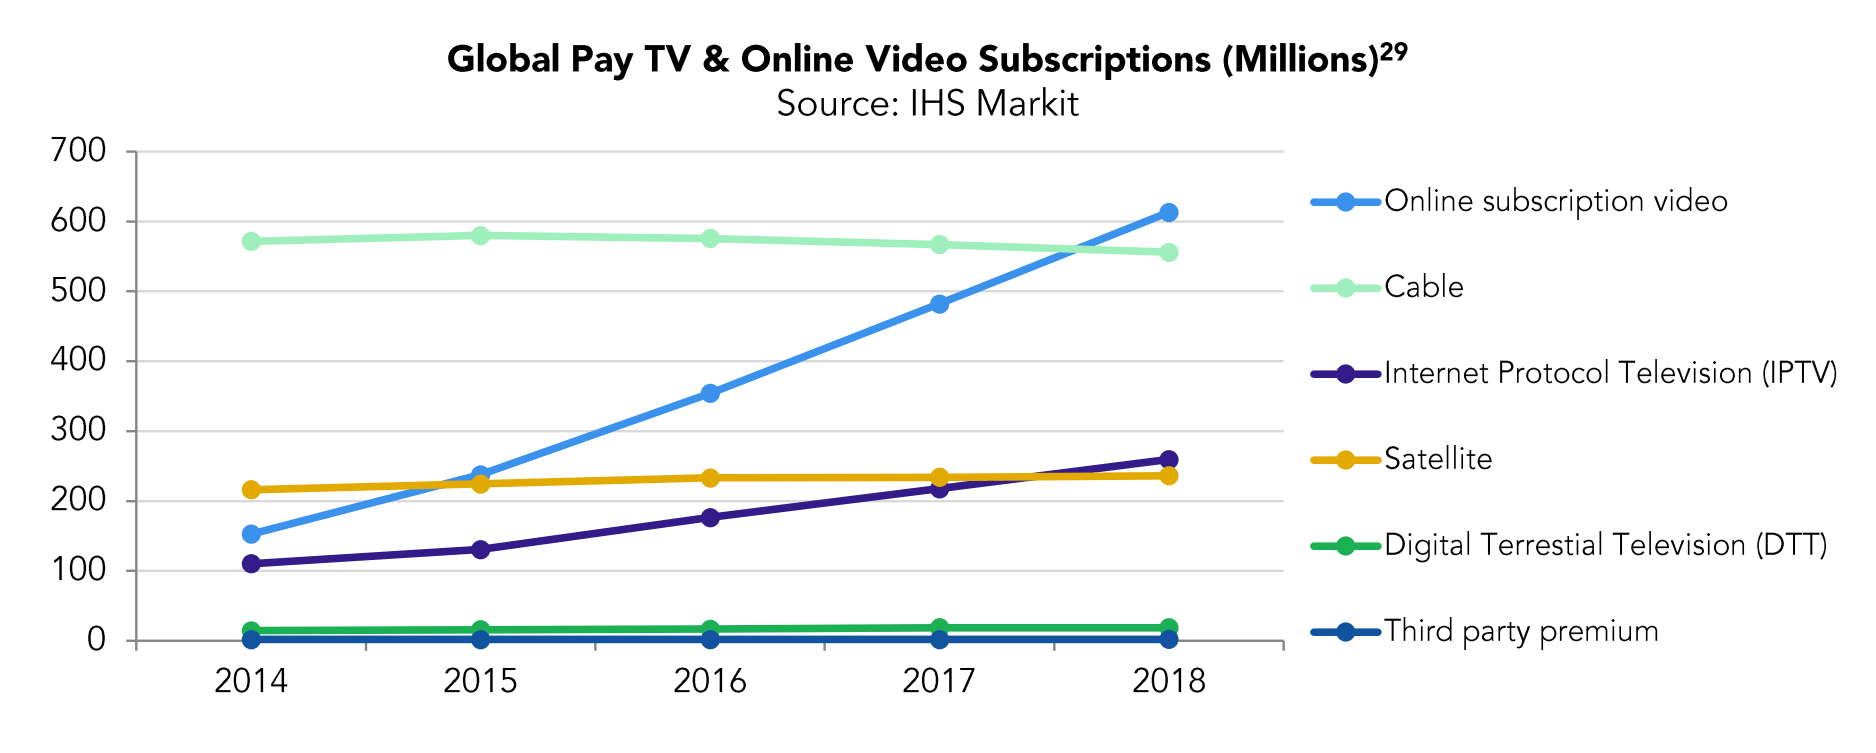 Streaming Subscriptions Surpassed Cable Worldwide in 2018